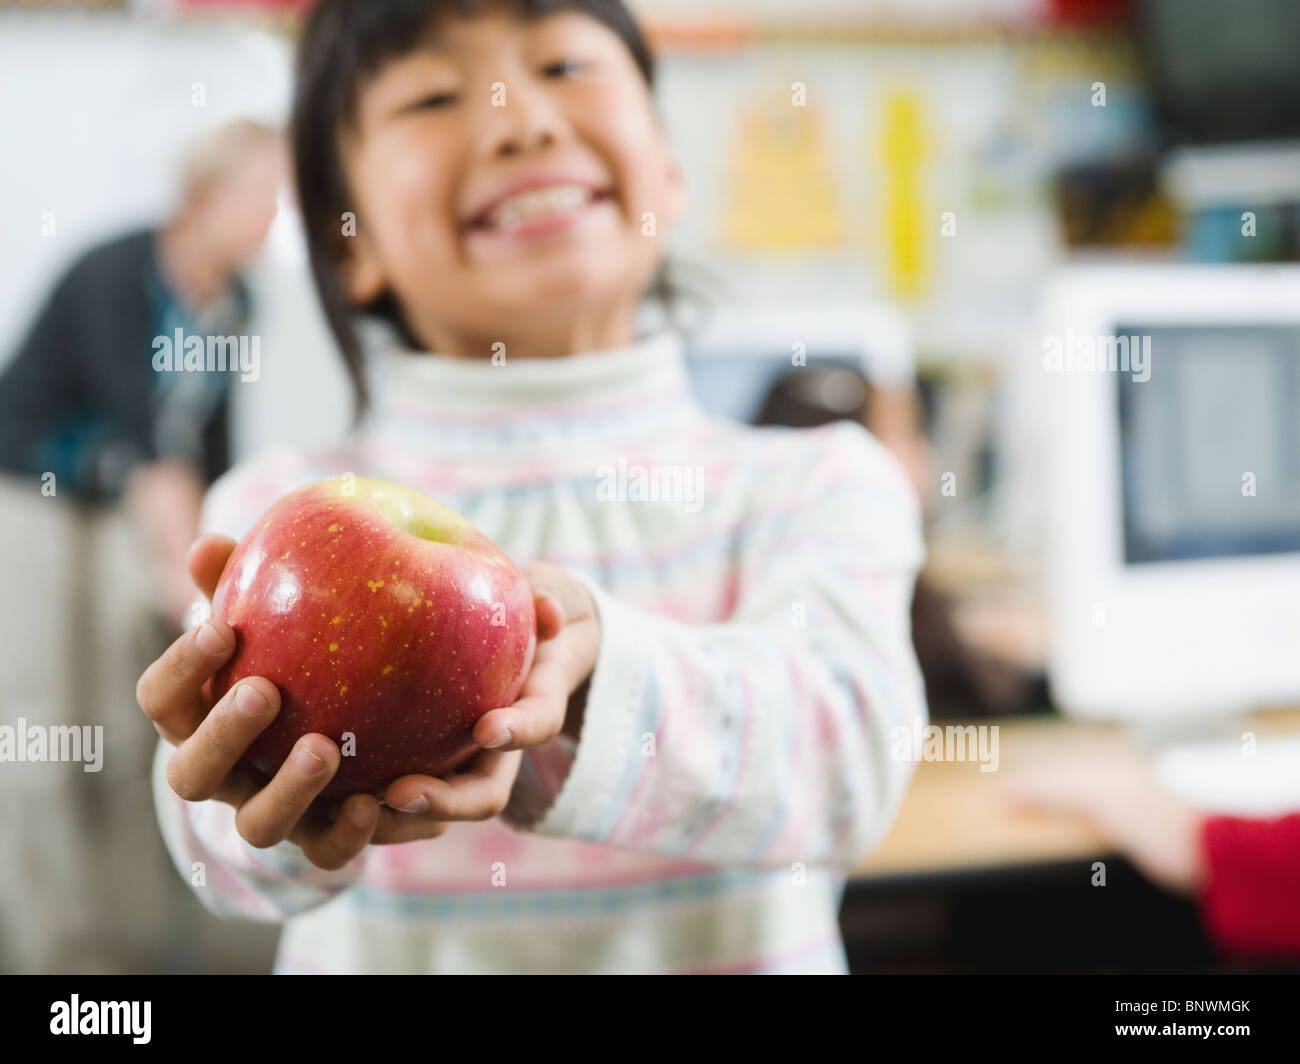 Elementary student holding an apple in her hand - Stock Image